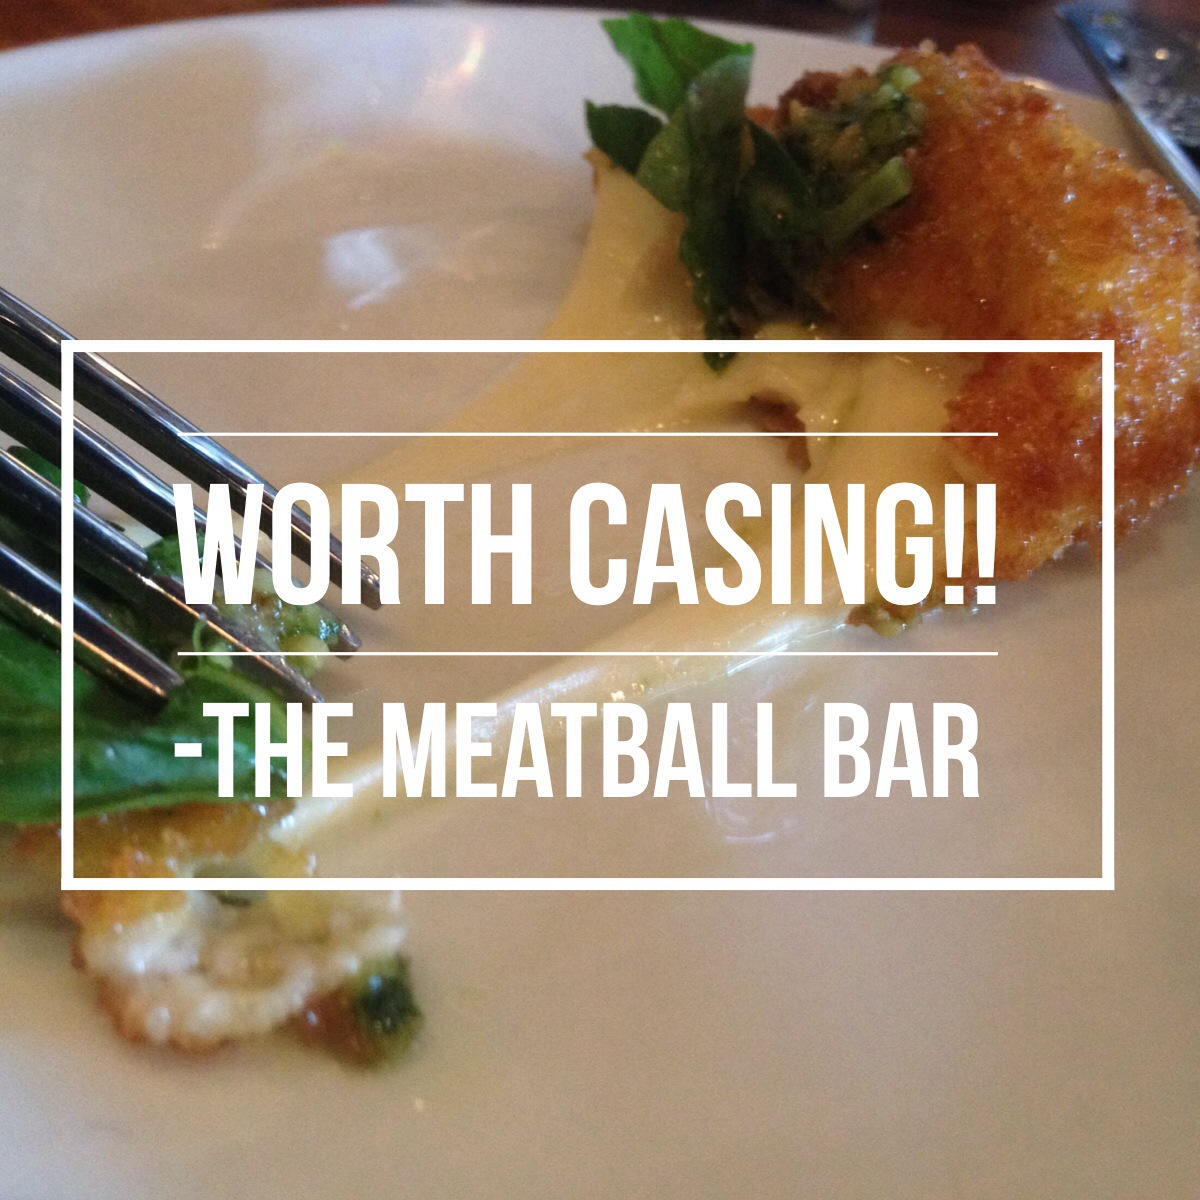 Mystery Case Food Review   Meatball Bar